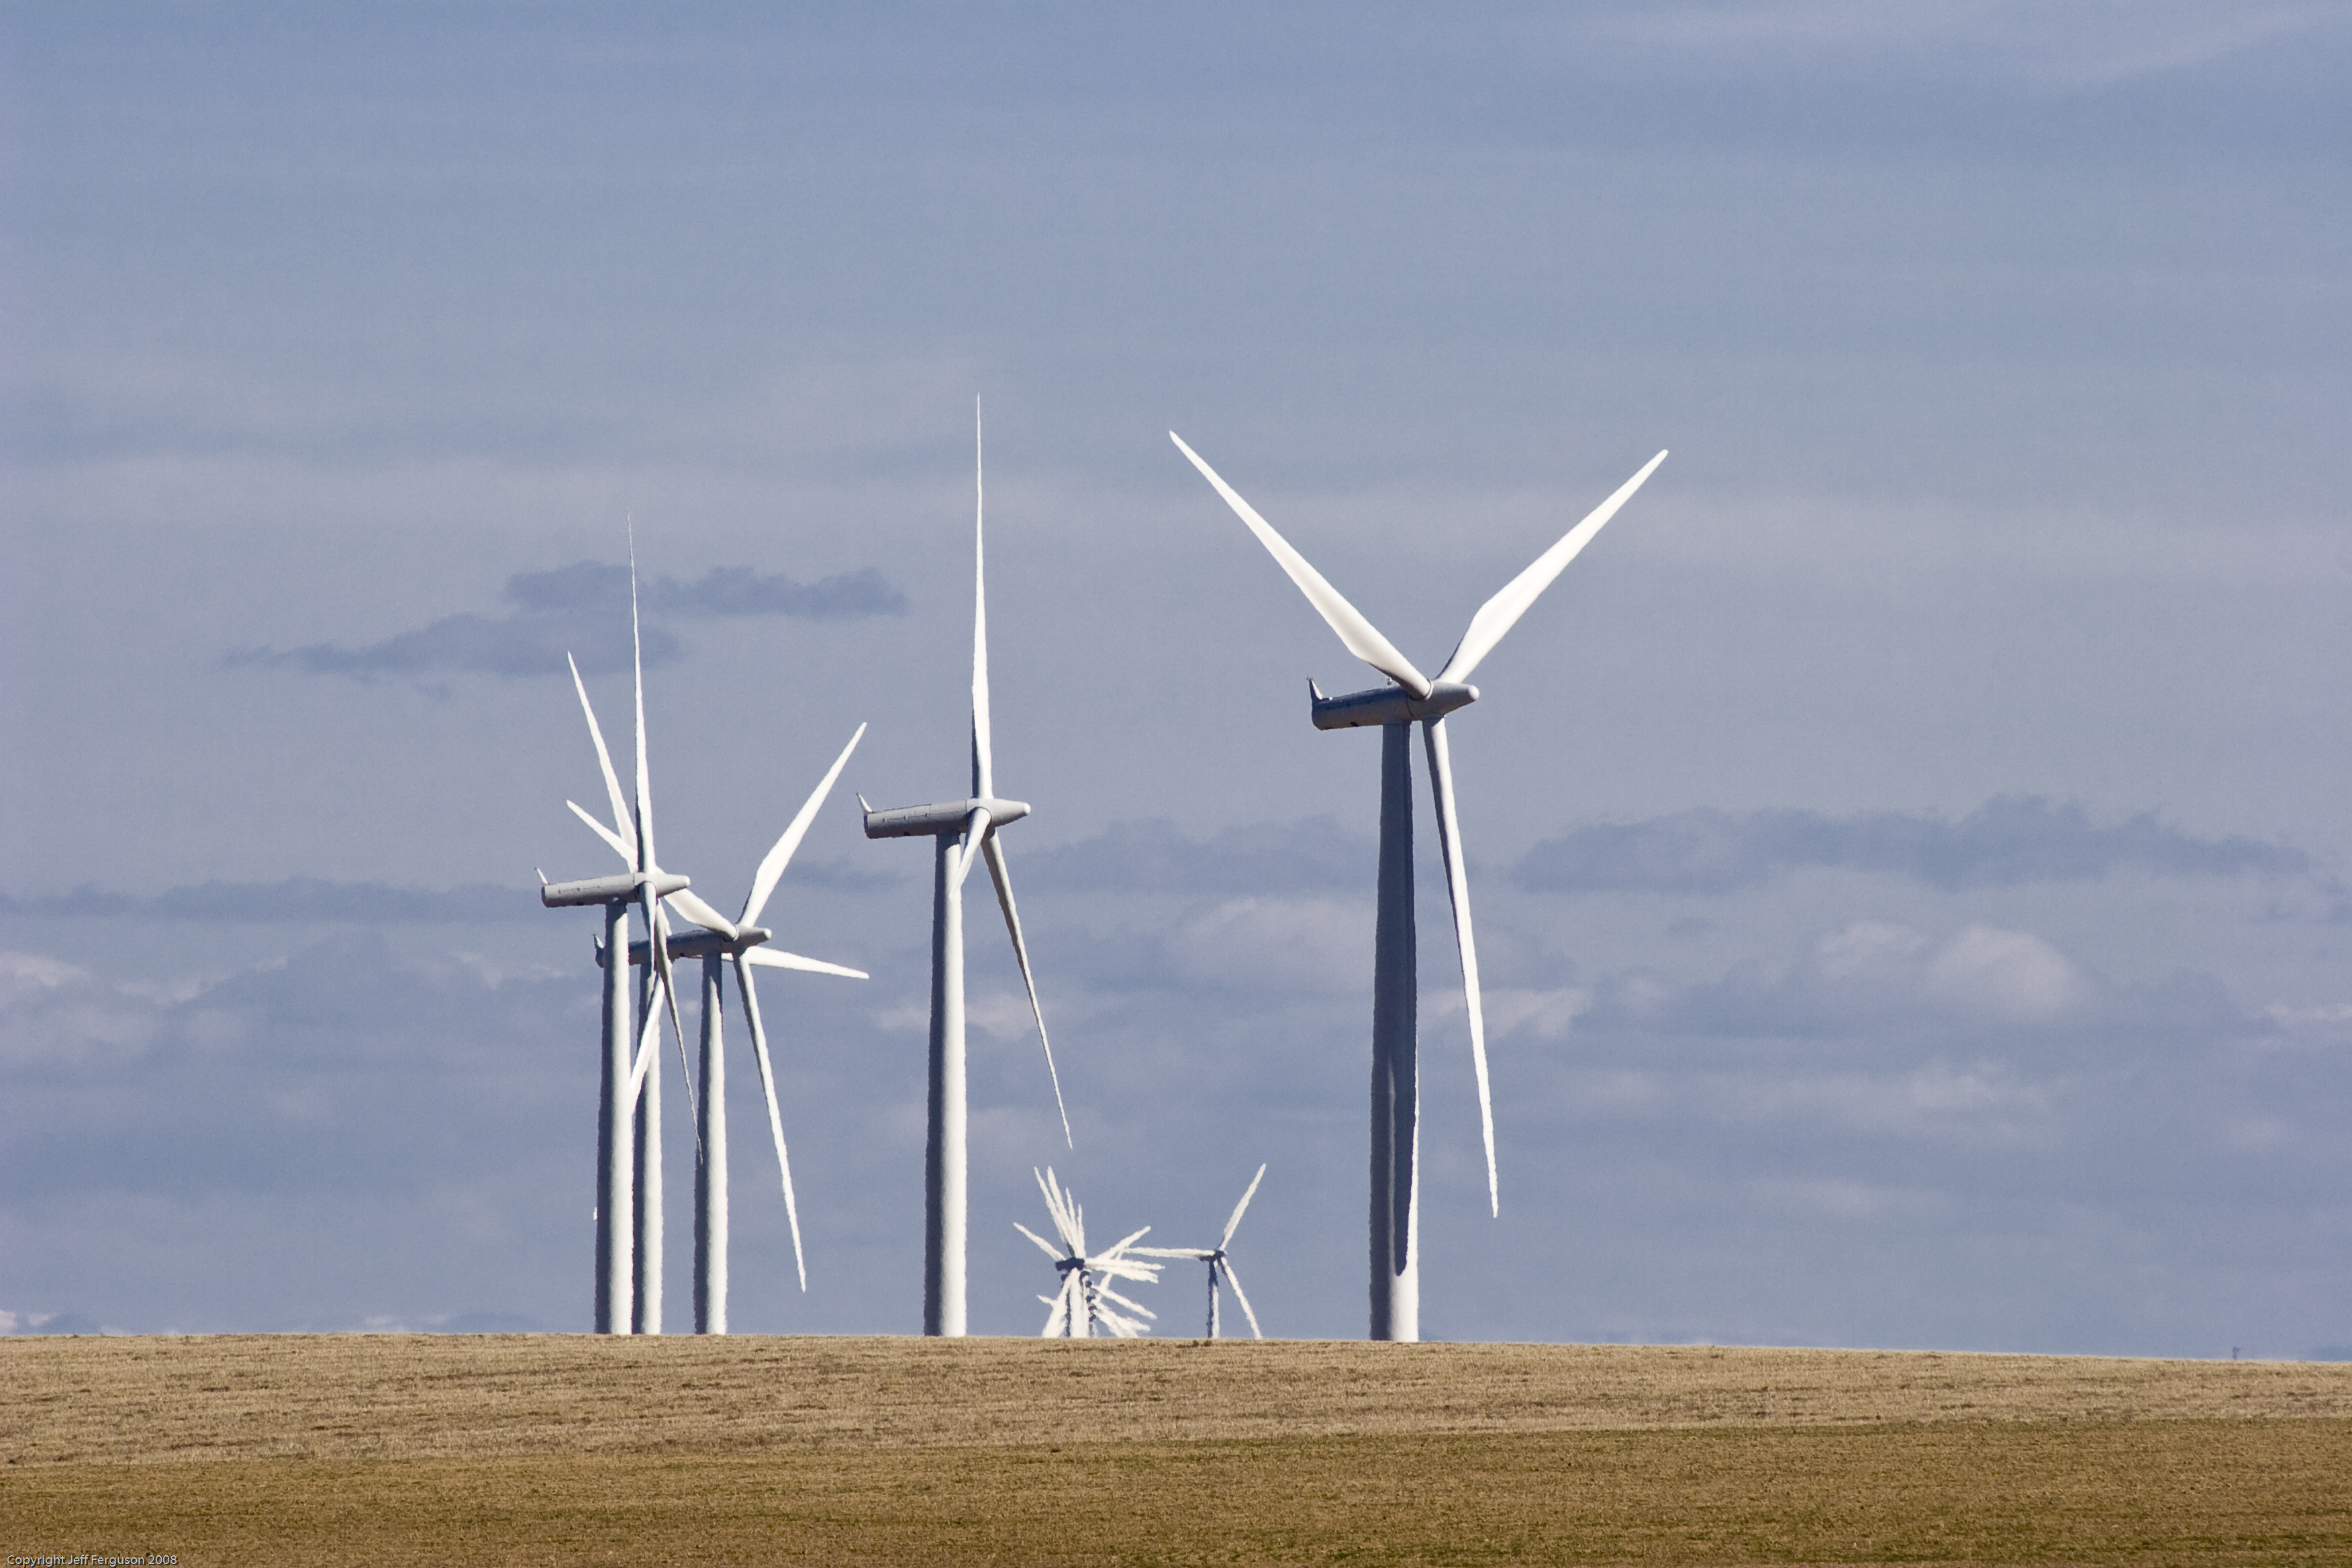 Romania to Scale Back Clean-Energy Aid to Curb Power-Price Gains